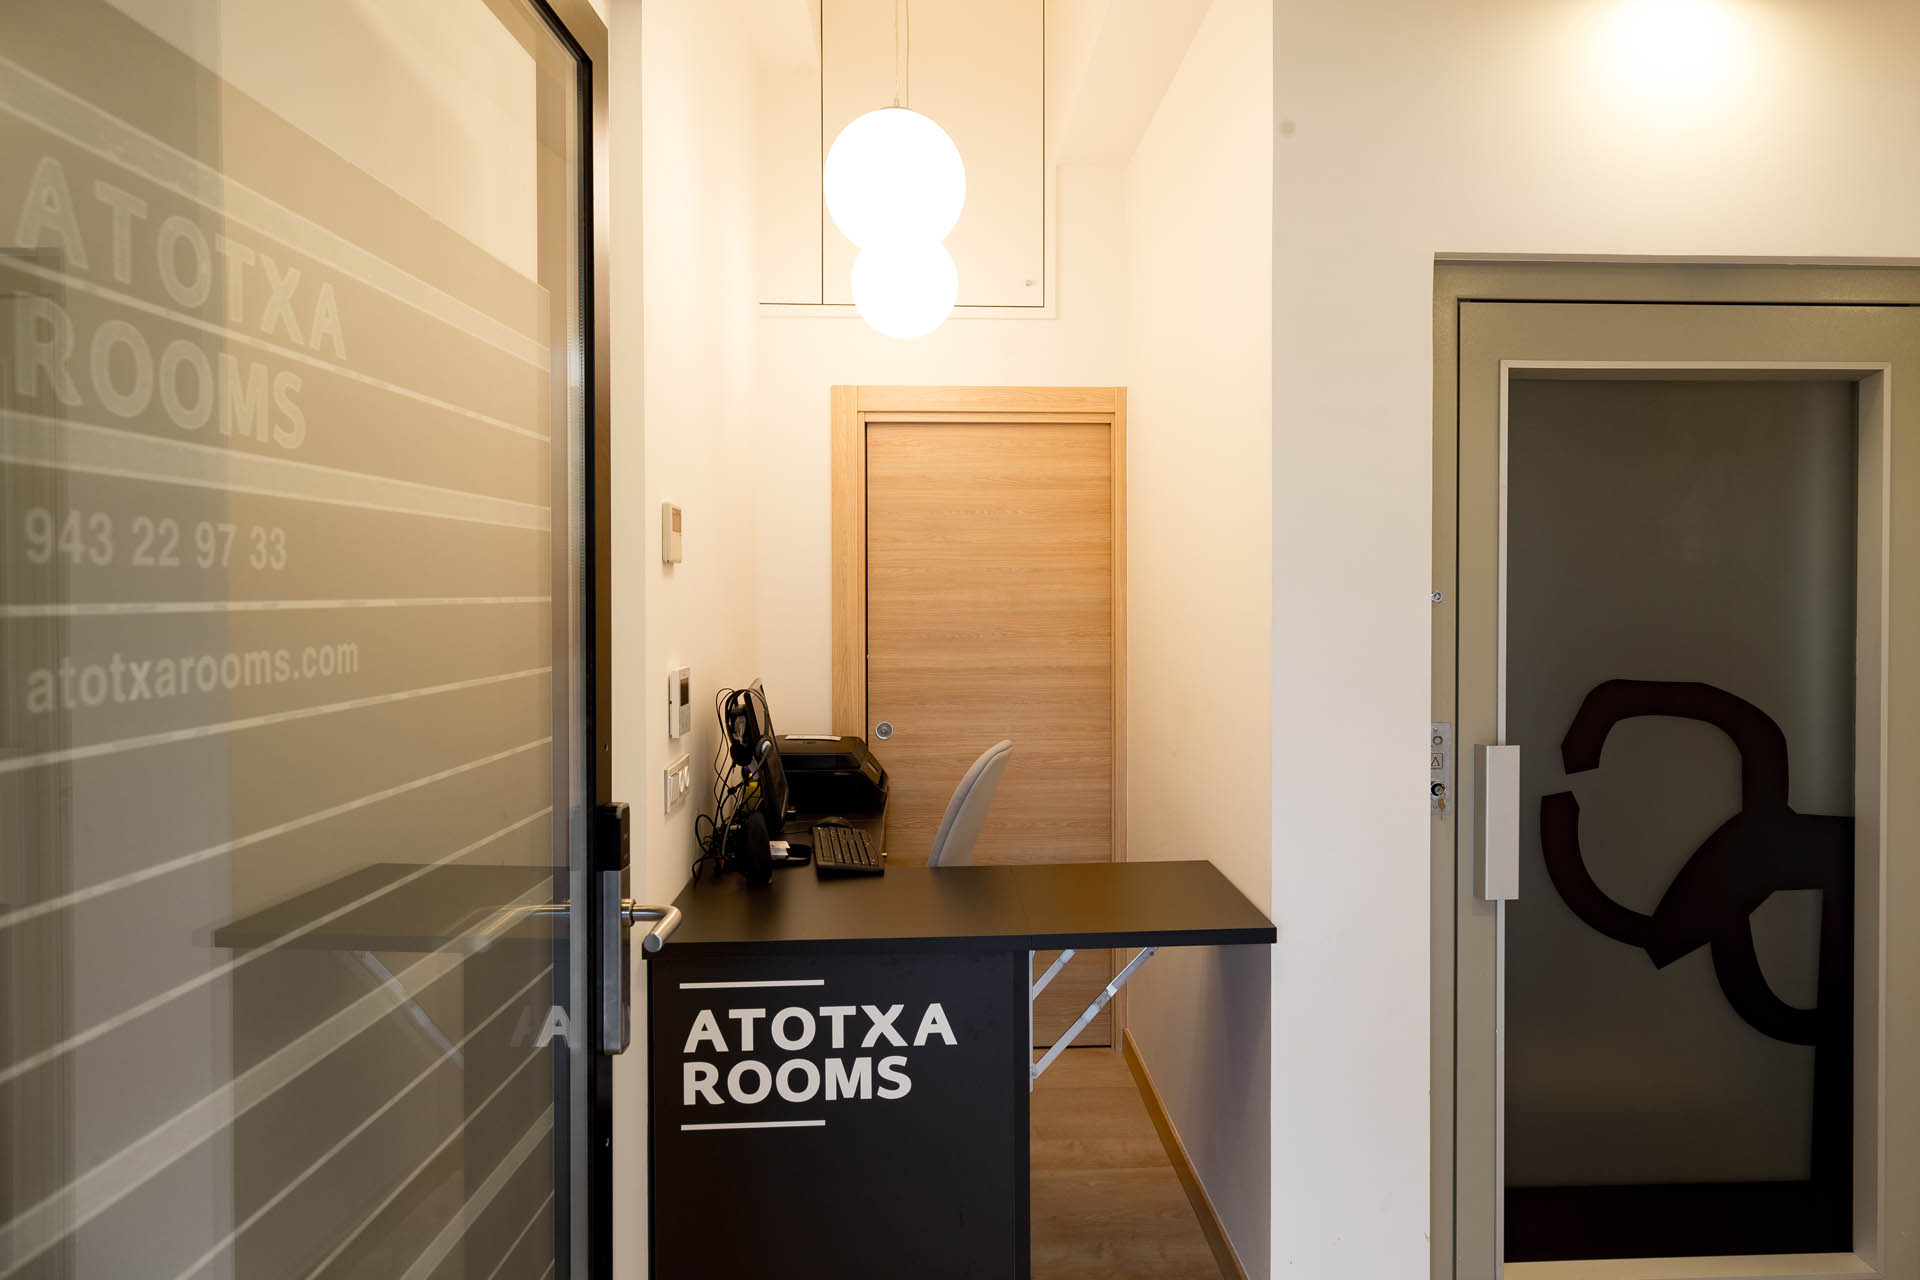 Atotxa Rooms _27